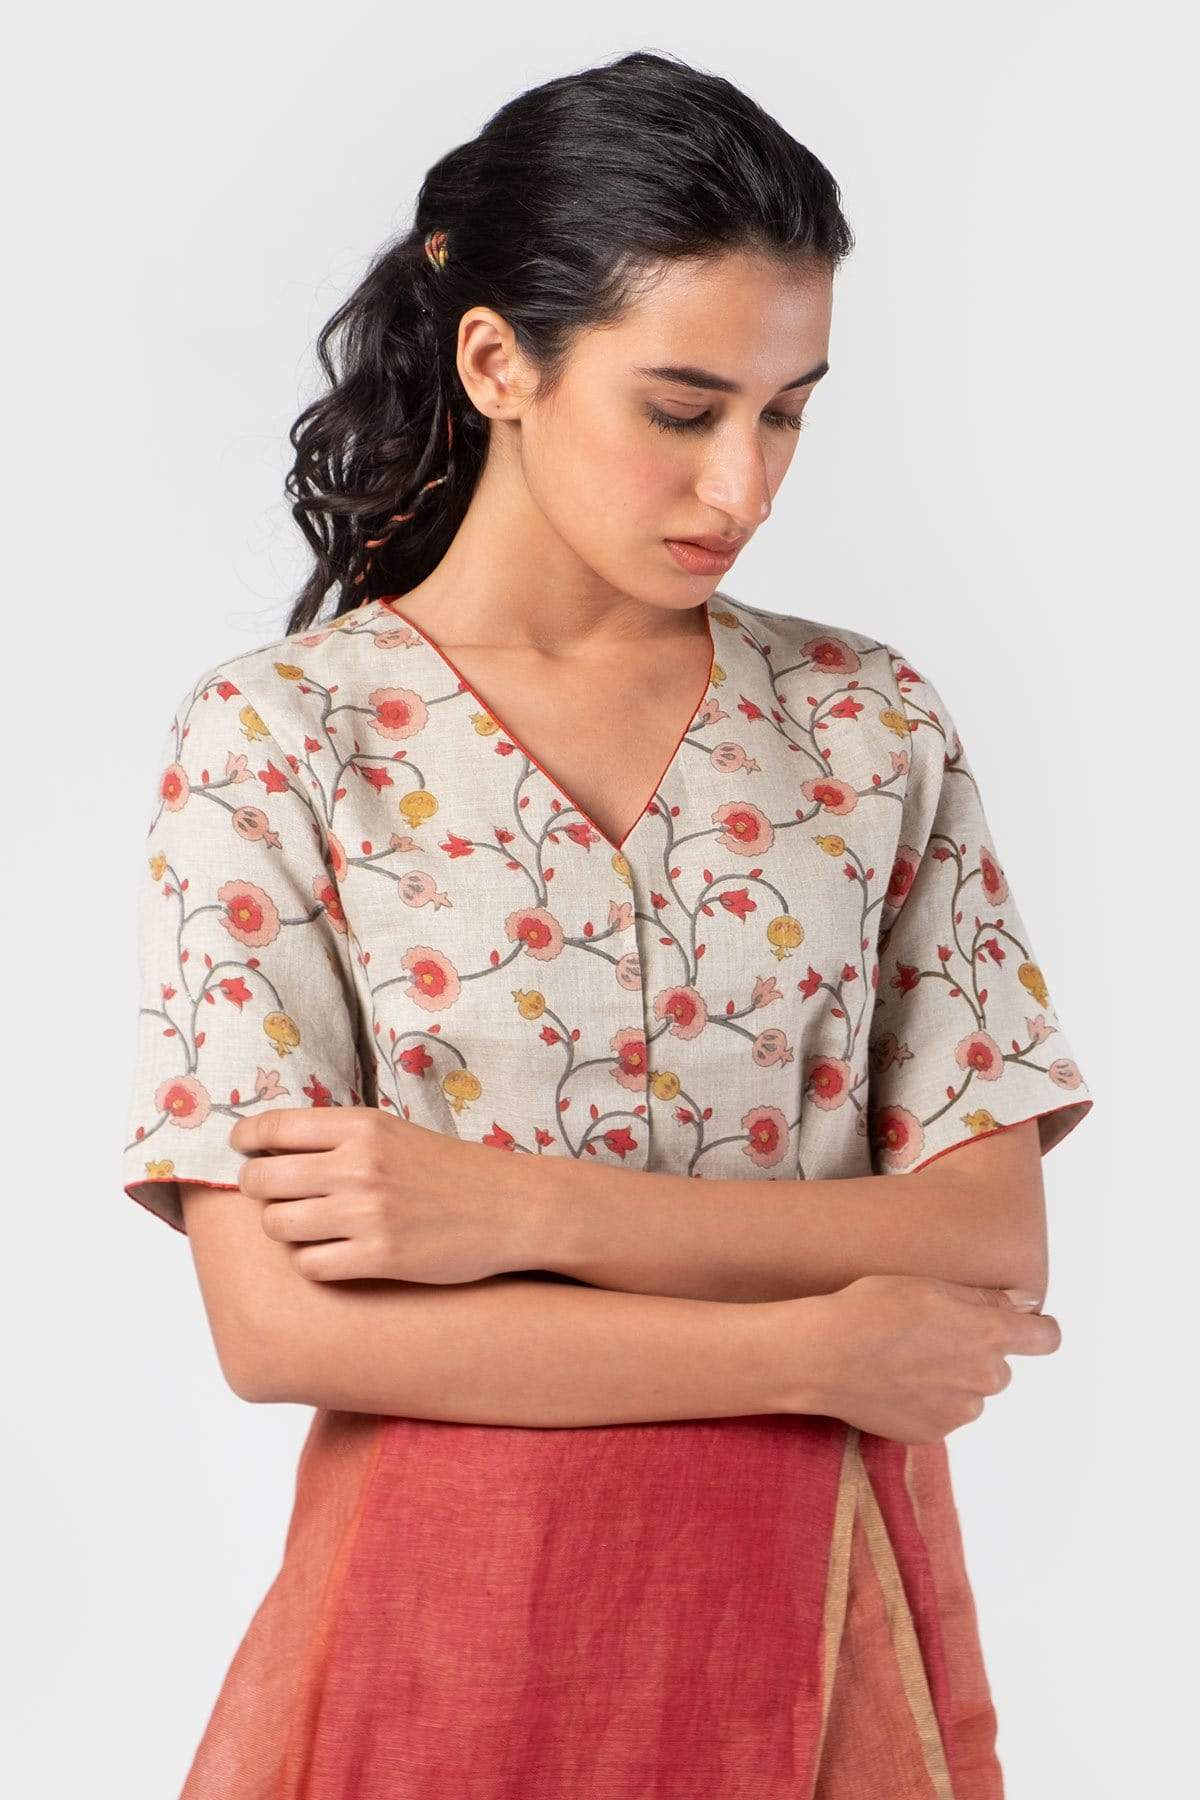 ANAVILA Blouses Pink floral summer blouse